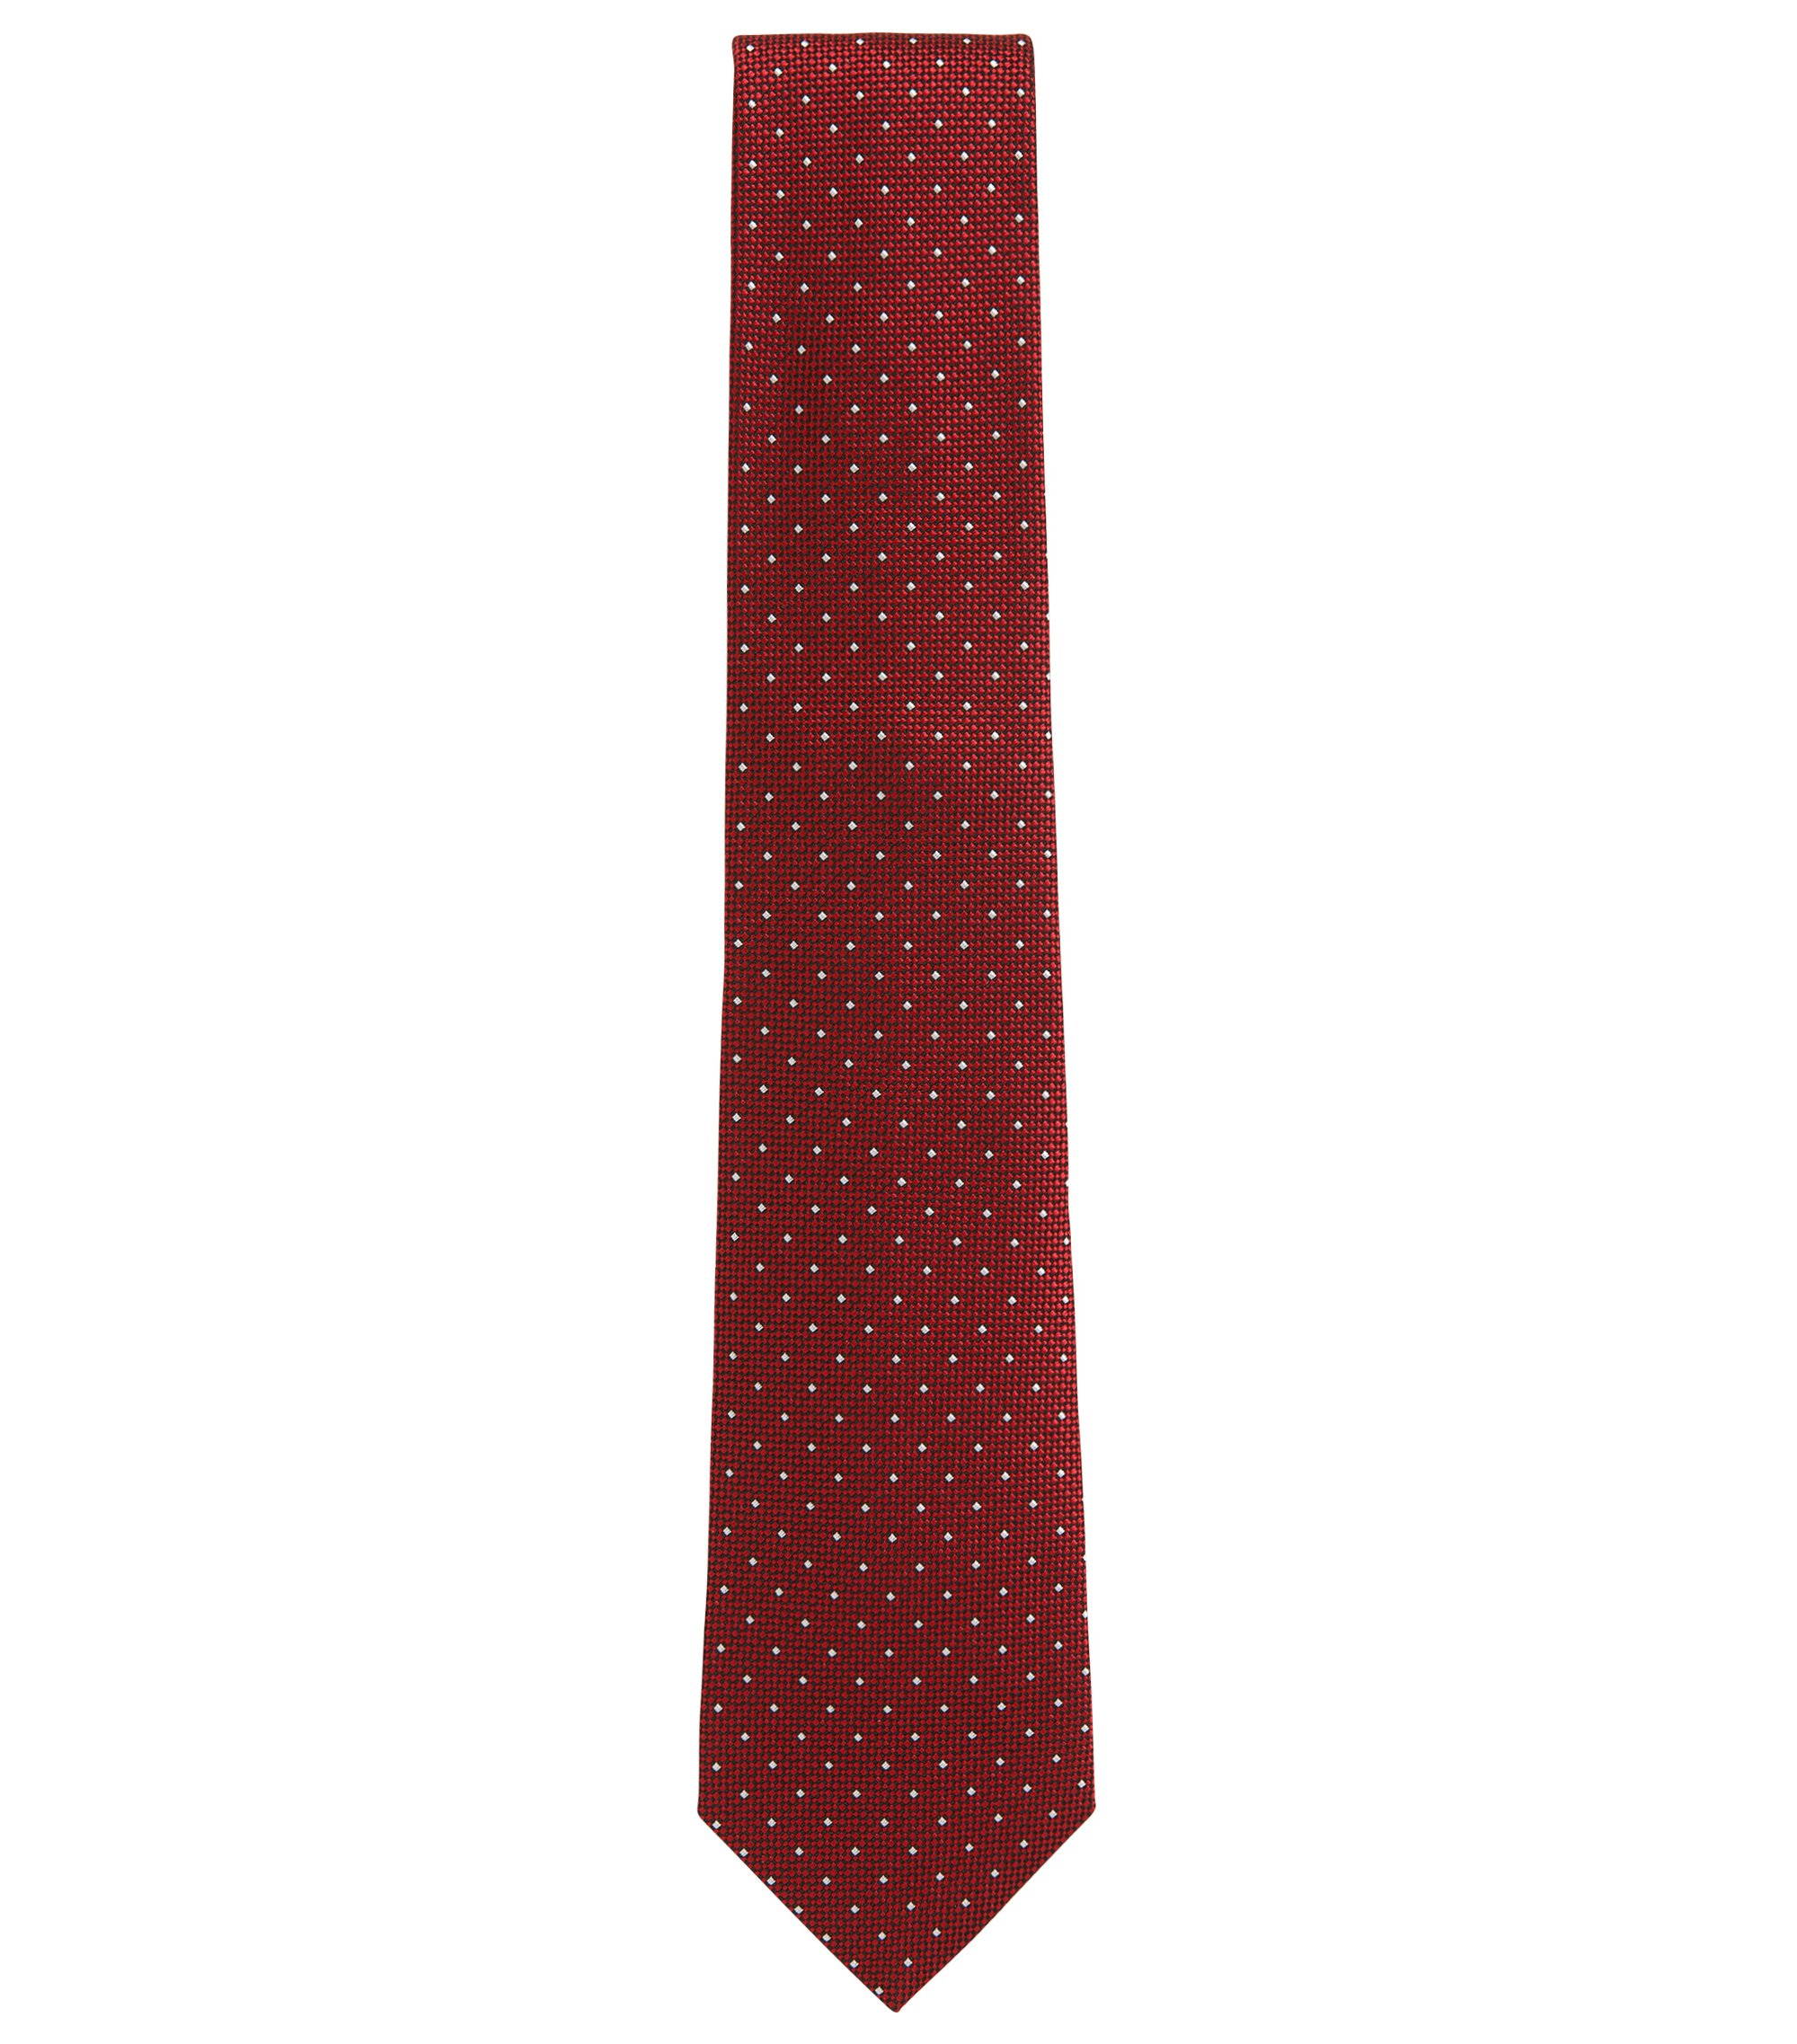 BOSS Tailored Polka Dot Dobby Italian Silk Tie, Red